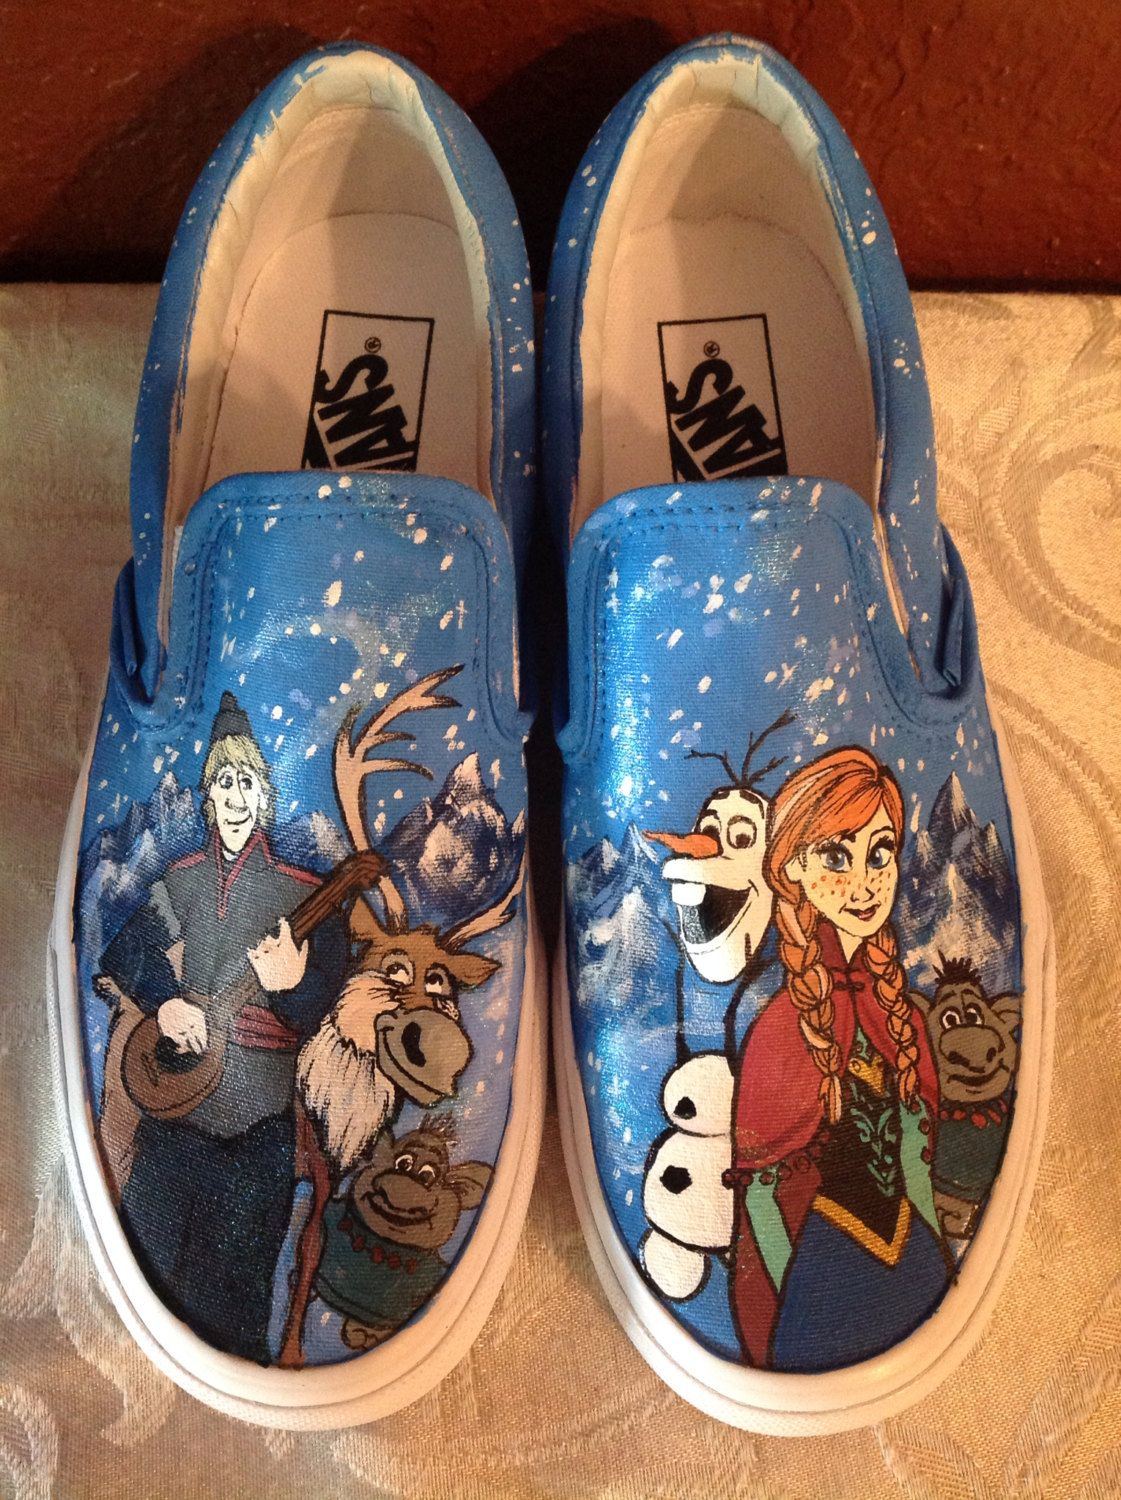 Frozen Shoes by simplycolorfilled on Etsy